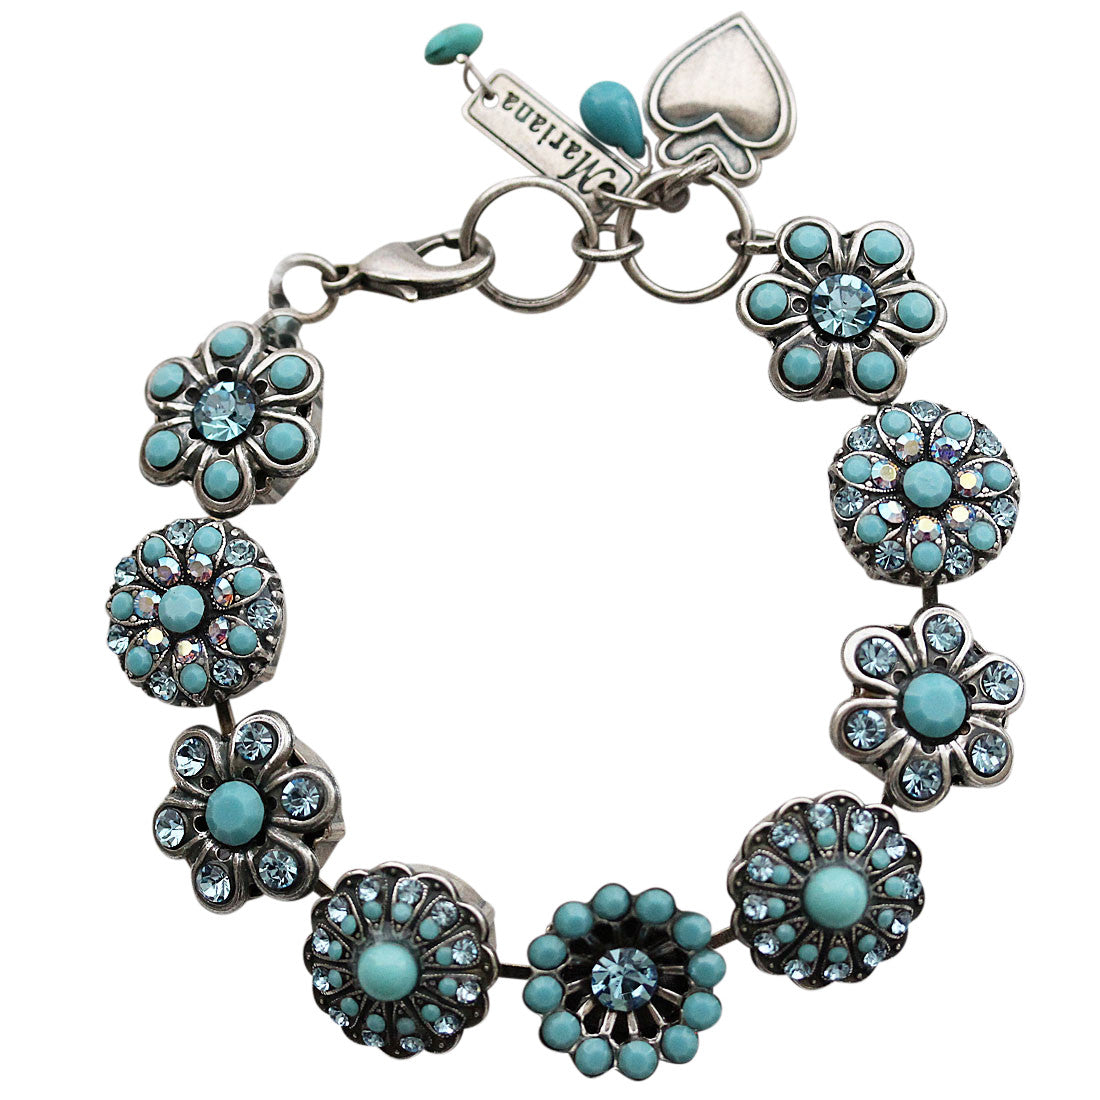 "Mariana Silver Plated Statement Flowers Swarovski Crystal Bracelet, 7"" Bliss 4138 2672"